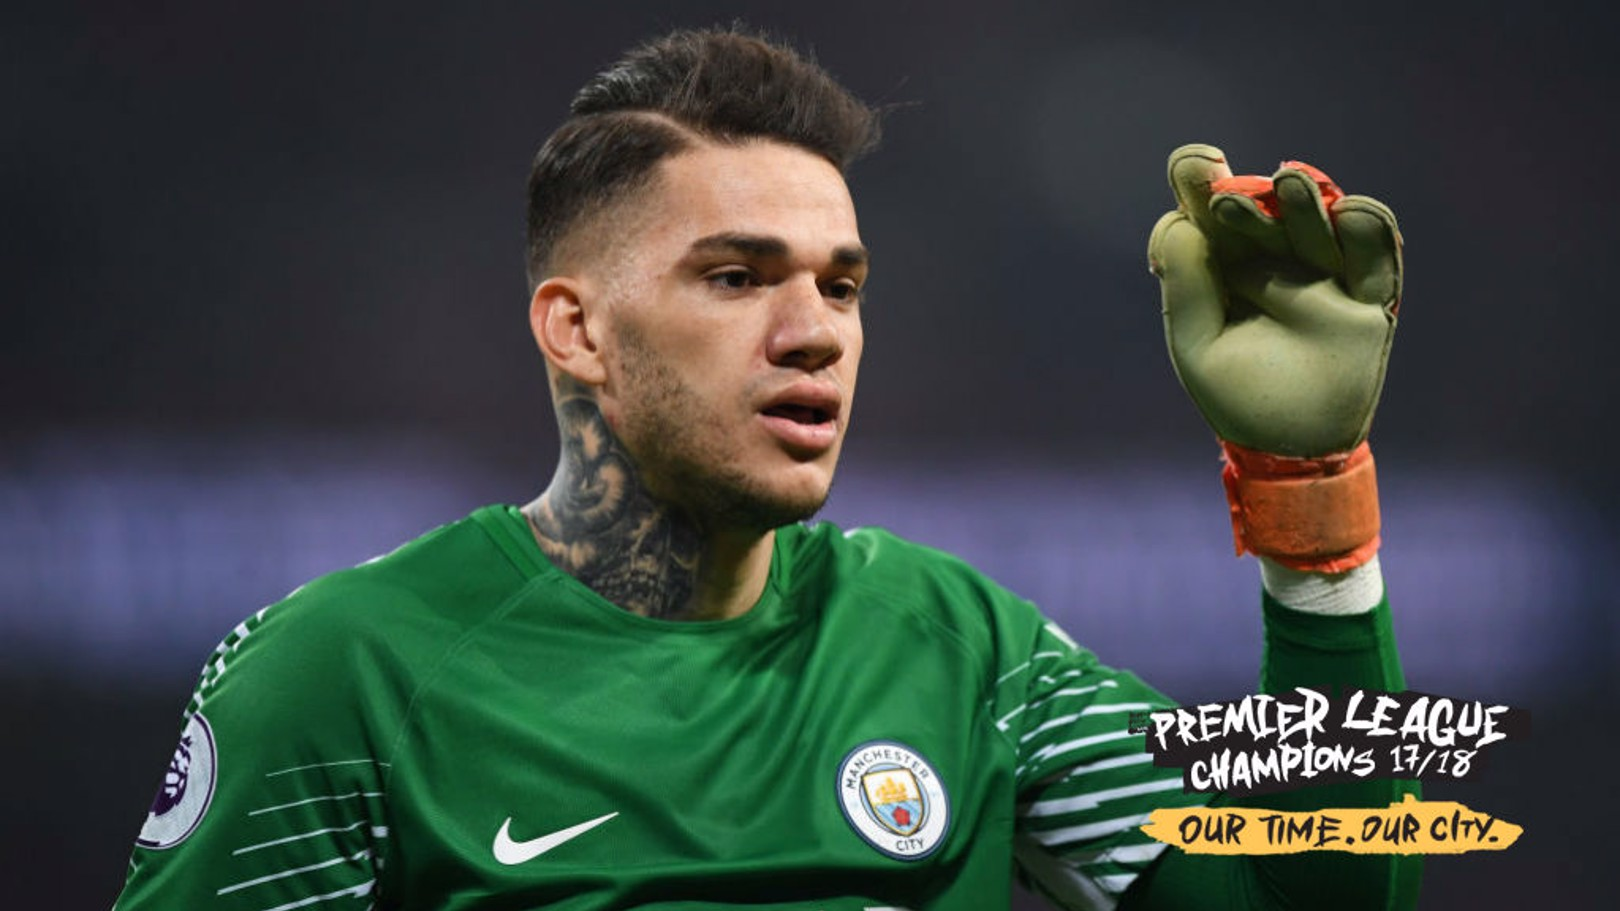 CHAMPIONS: Ederson has had a year to remember